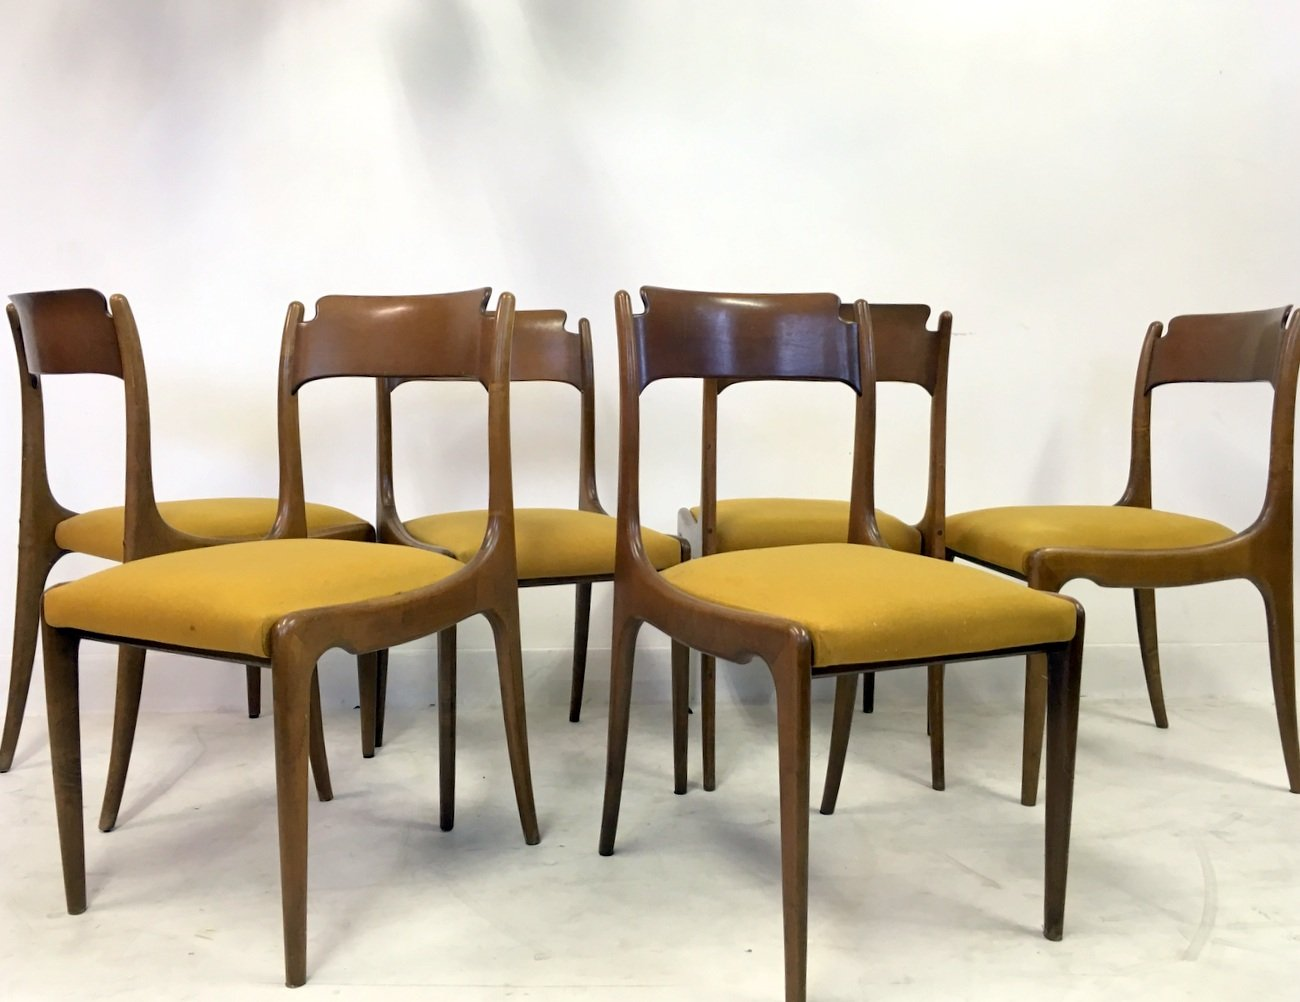 Italian Dining Chairs Mid Century Italian Dining Chairs 1950s Set Of 6 For